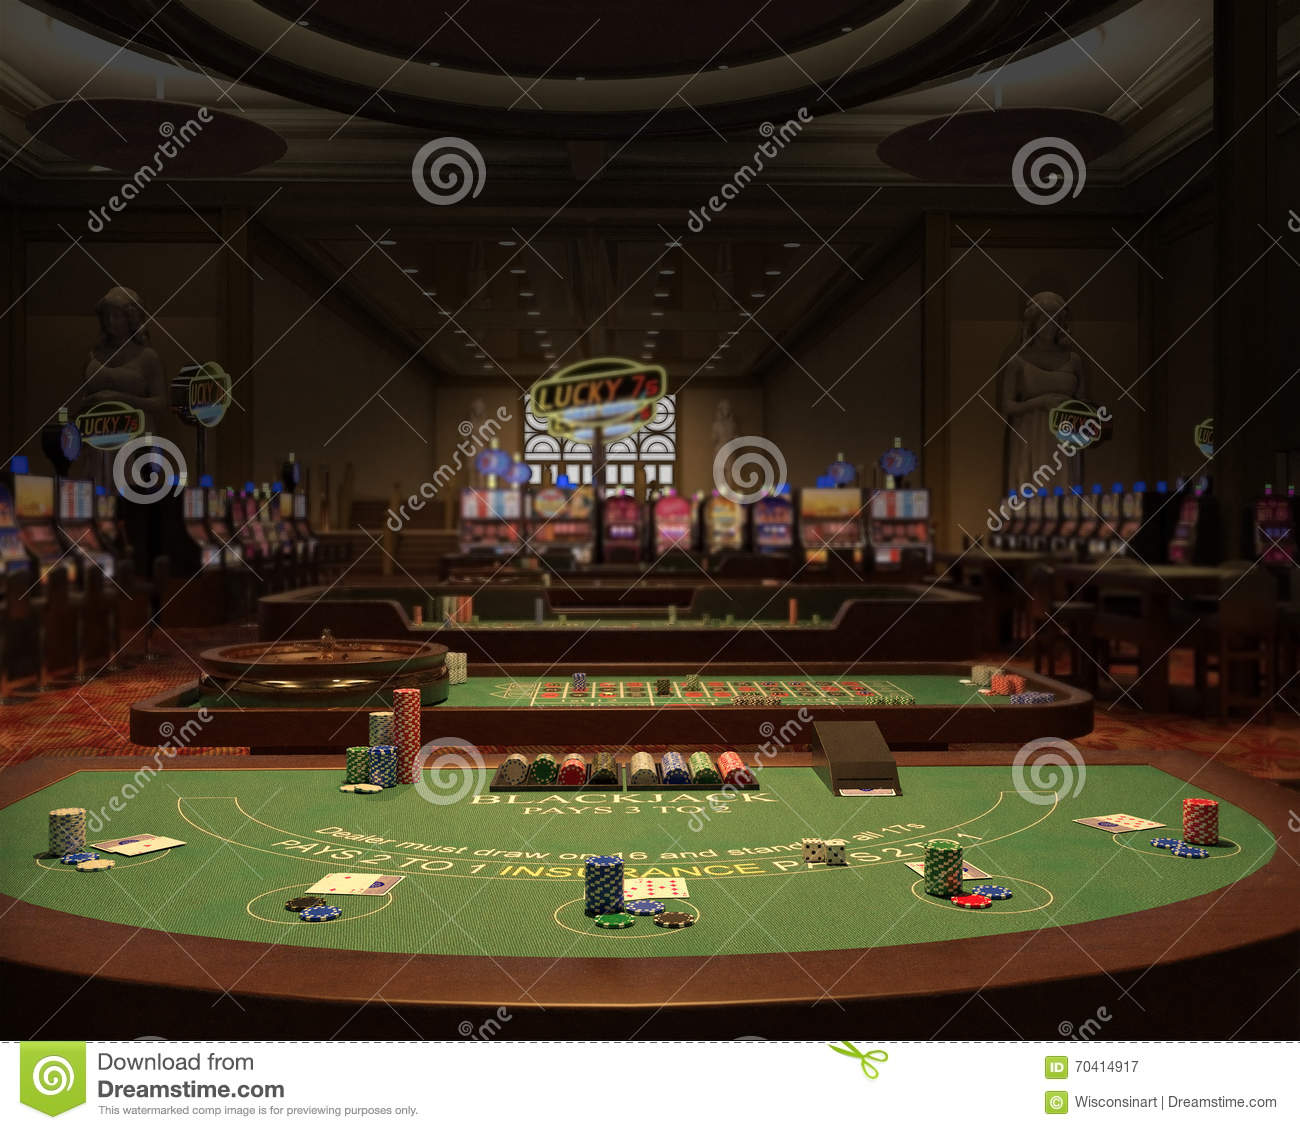 Casino, Gambling Hall, Blackjack Illustration